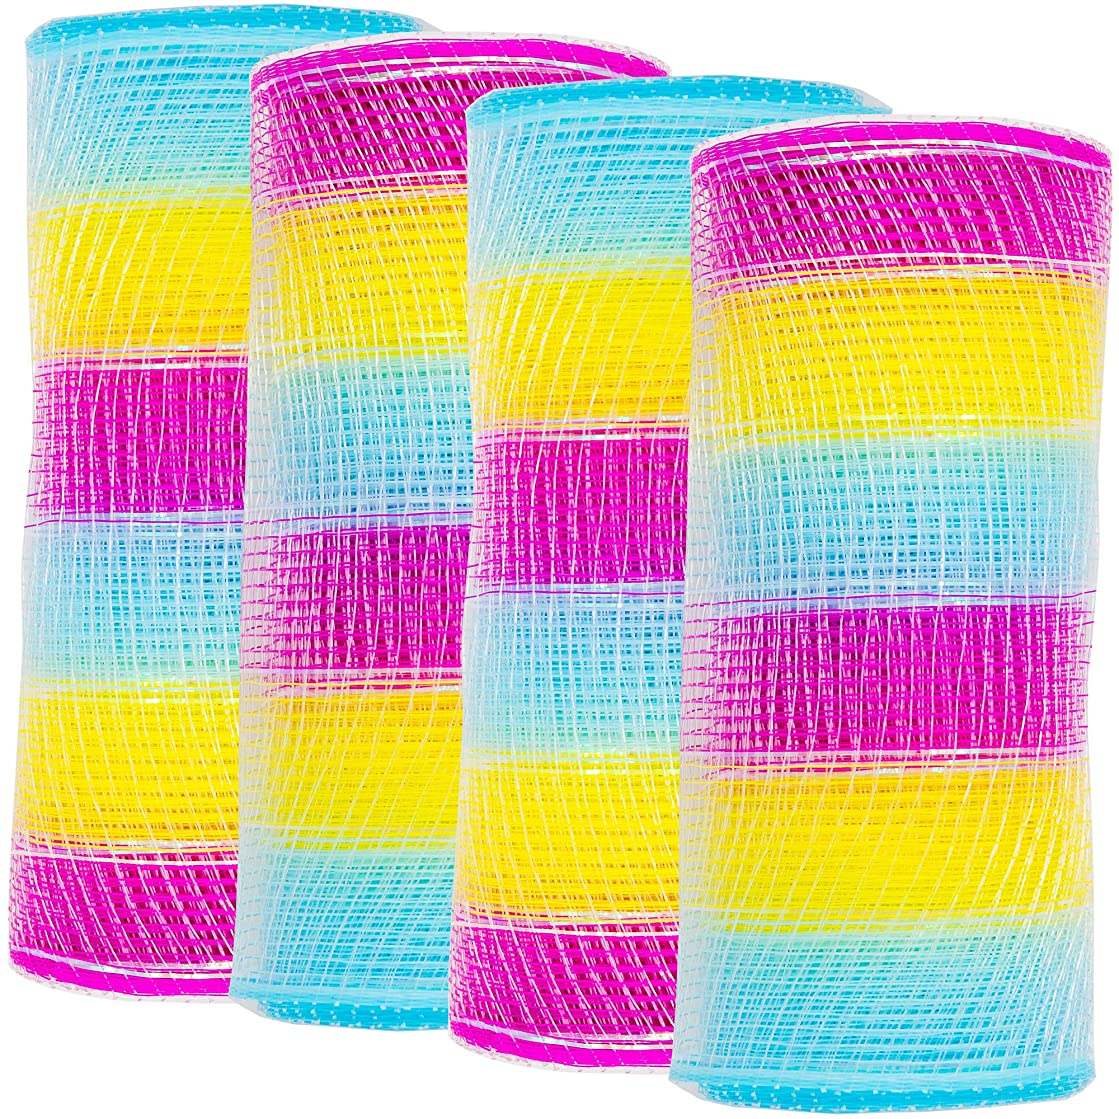 Easter Decorative Mesh Roll | 6 Inch X 5 Yards (4 Pack) | DIY Craft Project, Easter Basket Decor, Wreath Bow, Floral Bouquet, Center Pieces, Gift Wrapping | Multi-Colored Blue Yellow Red Pink